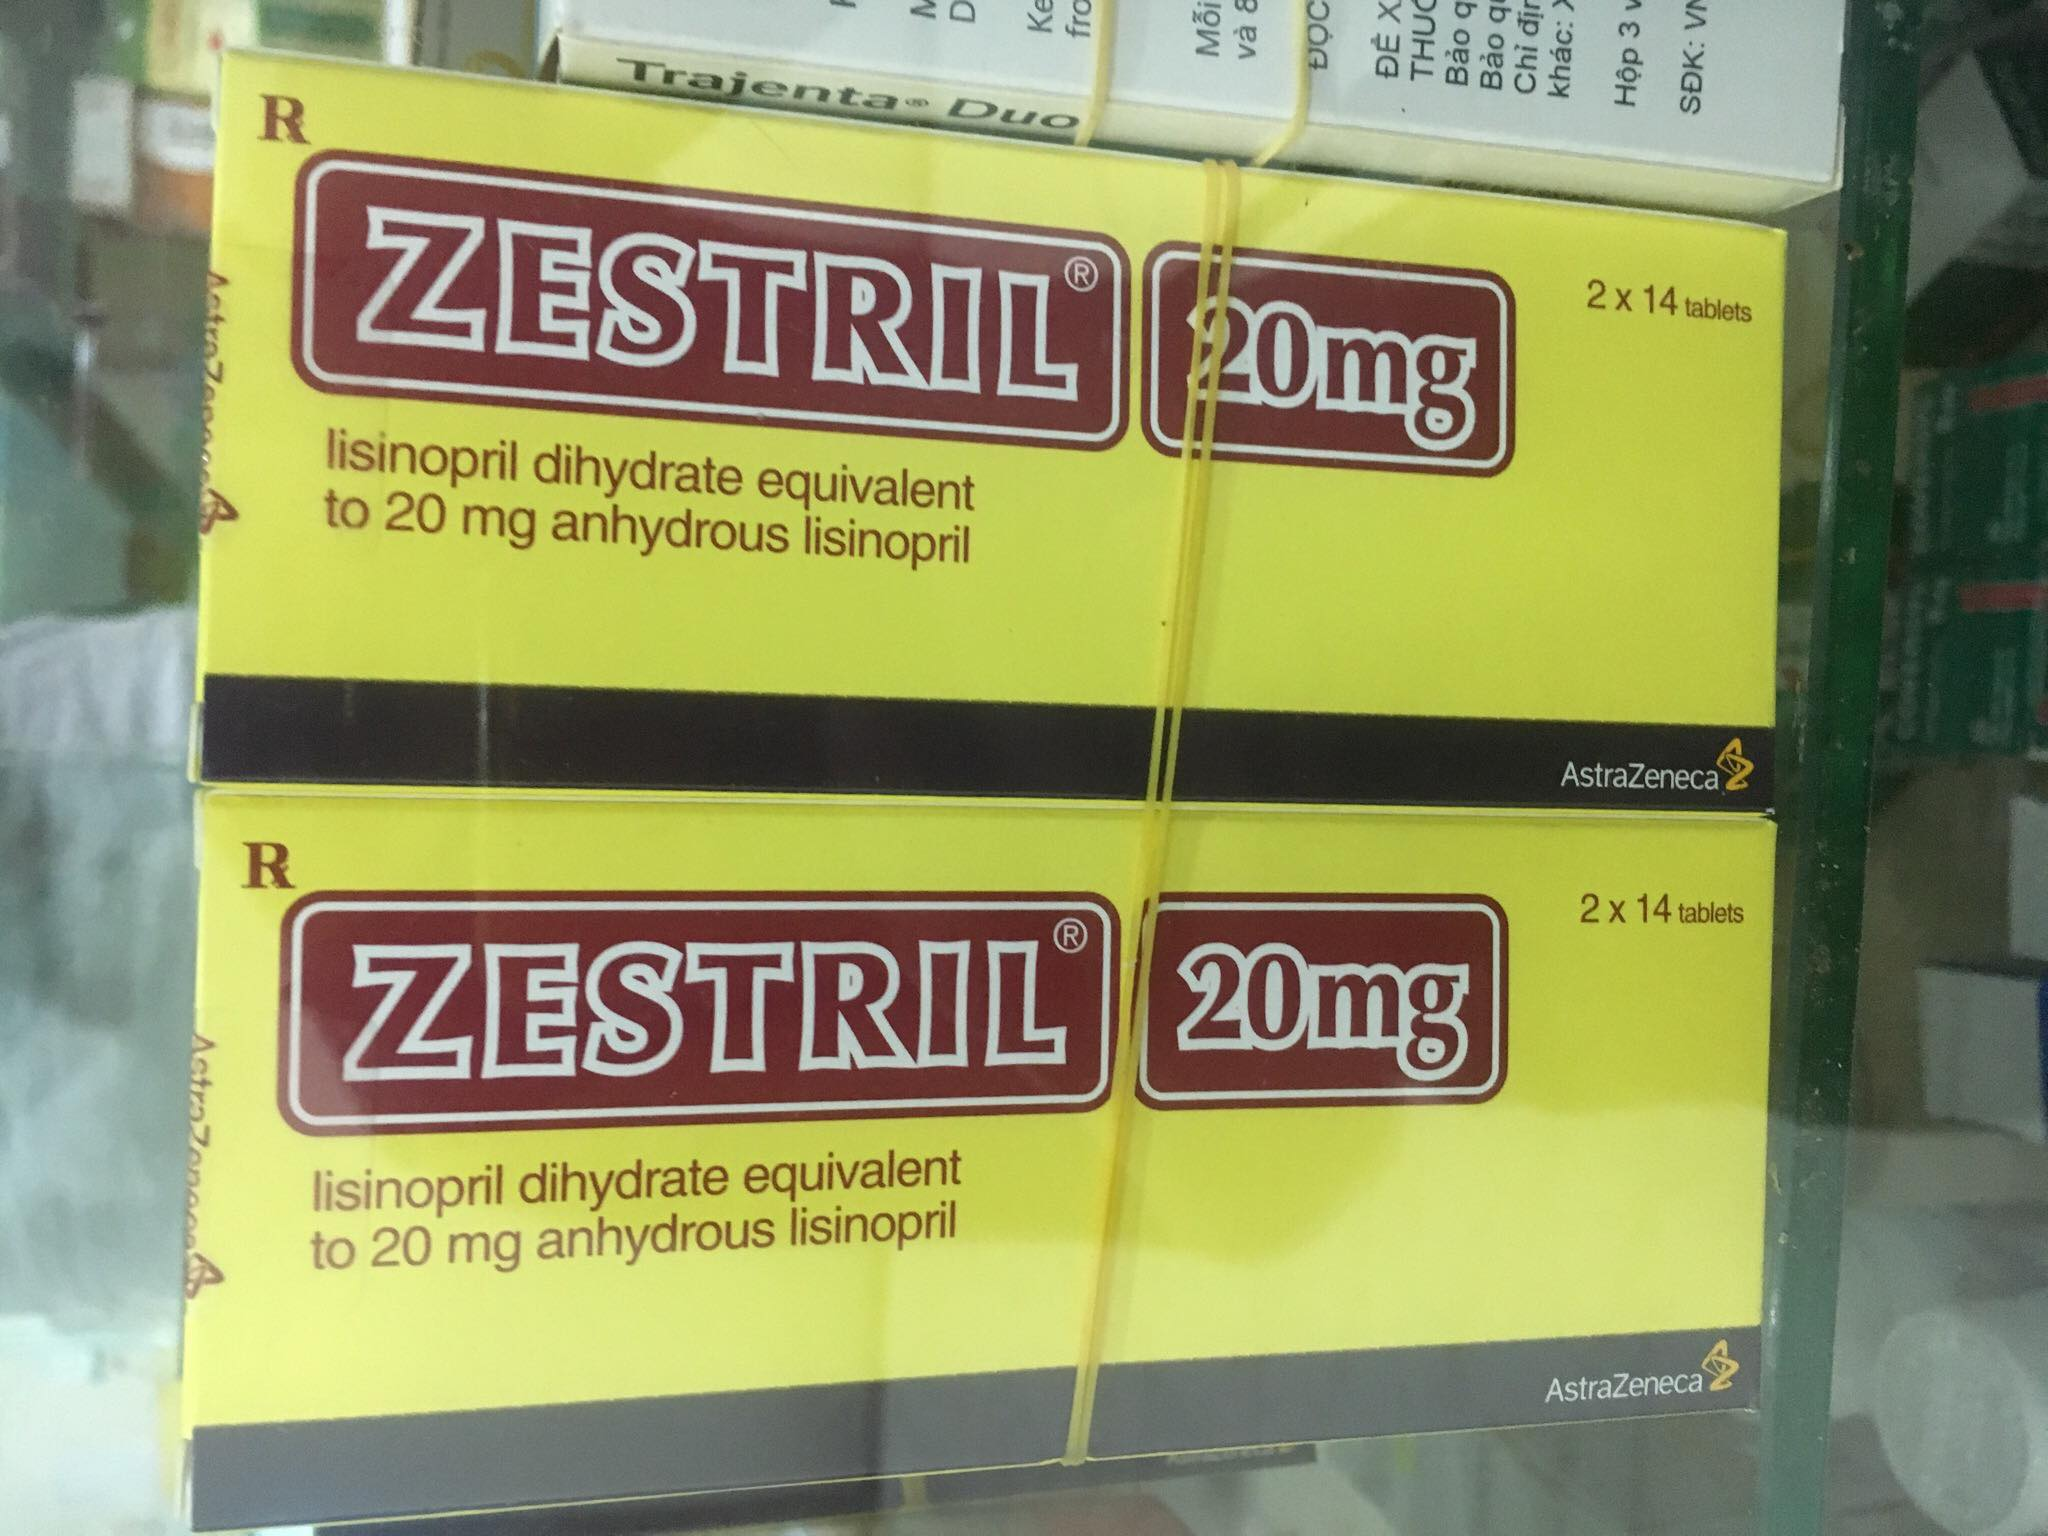 Zestril 20mg